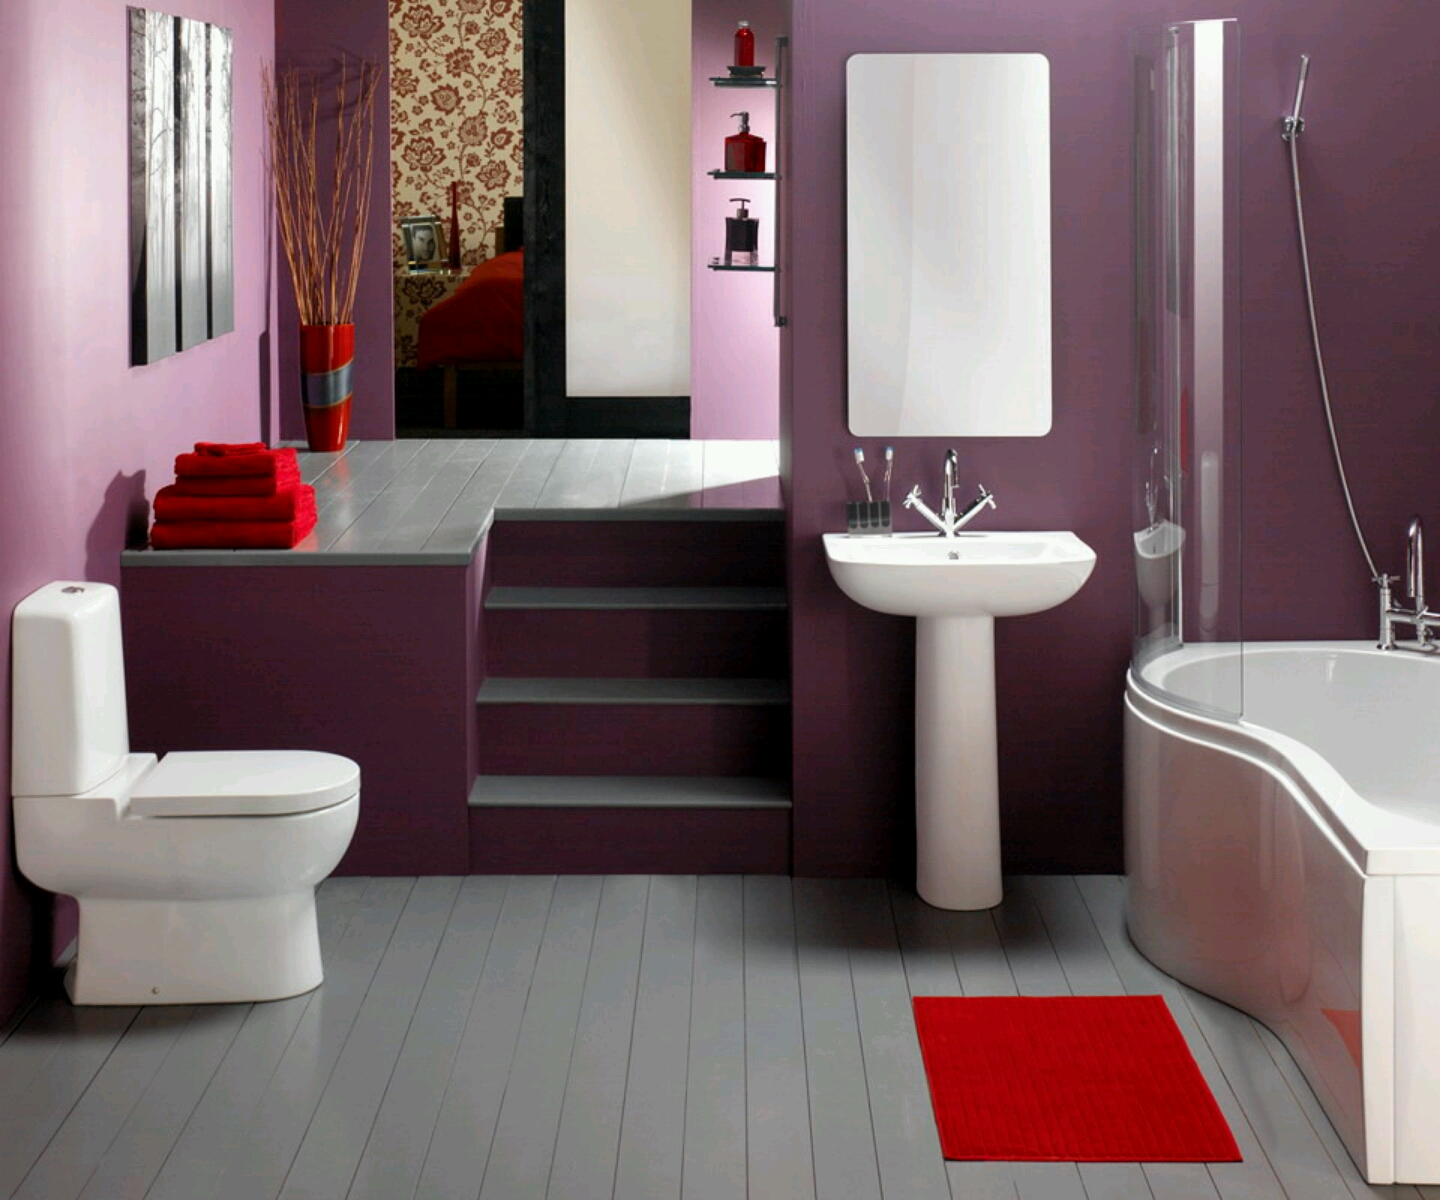 New home designs latest luxury modern bathrooms designs for Contemporary luxury bathroom ideas